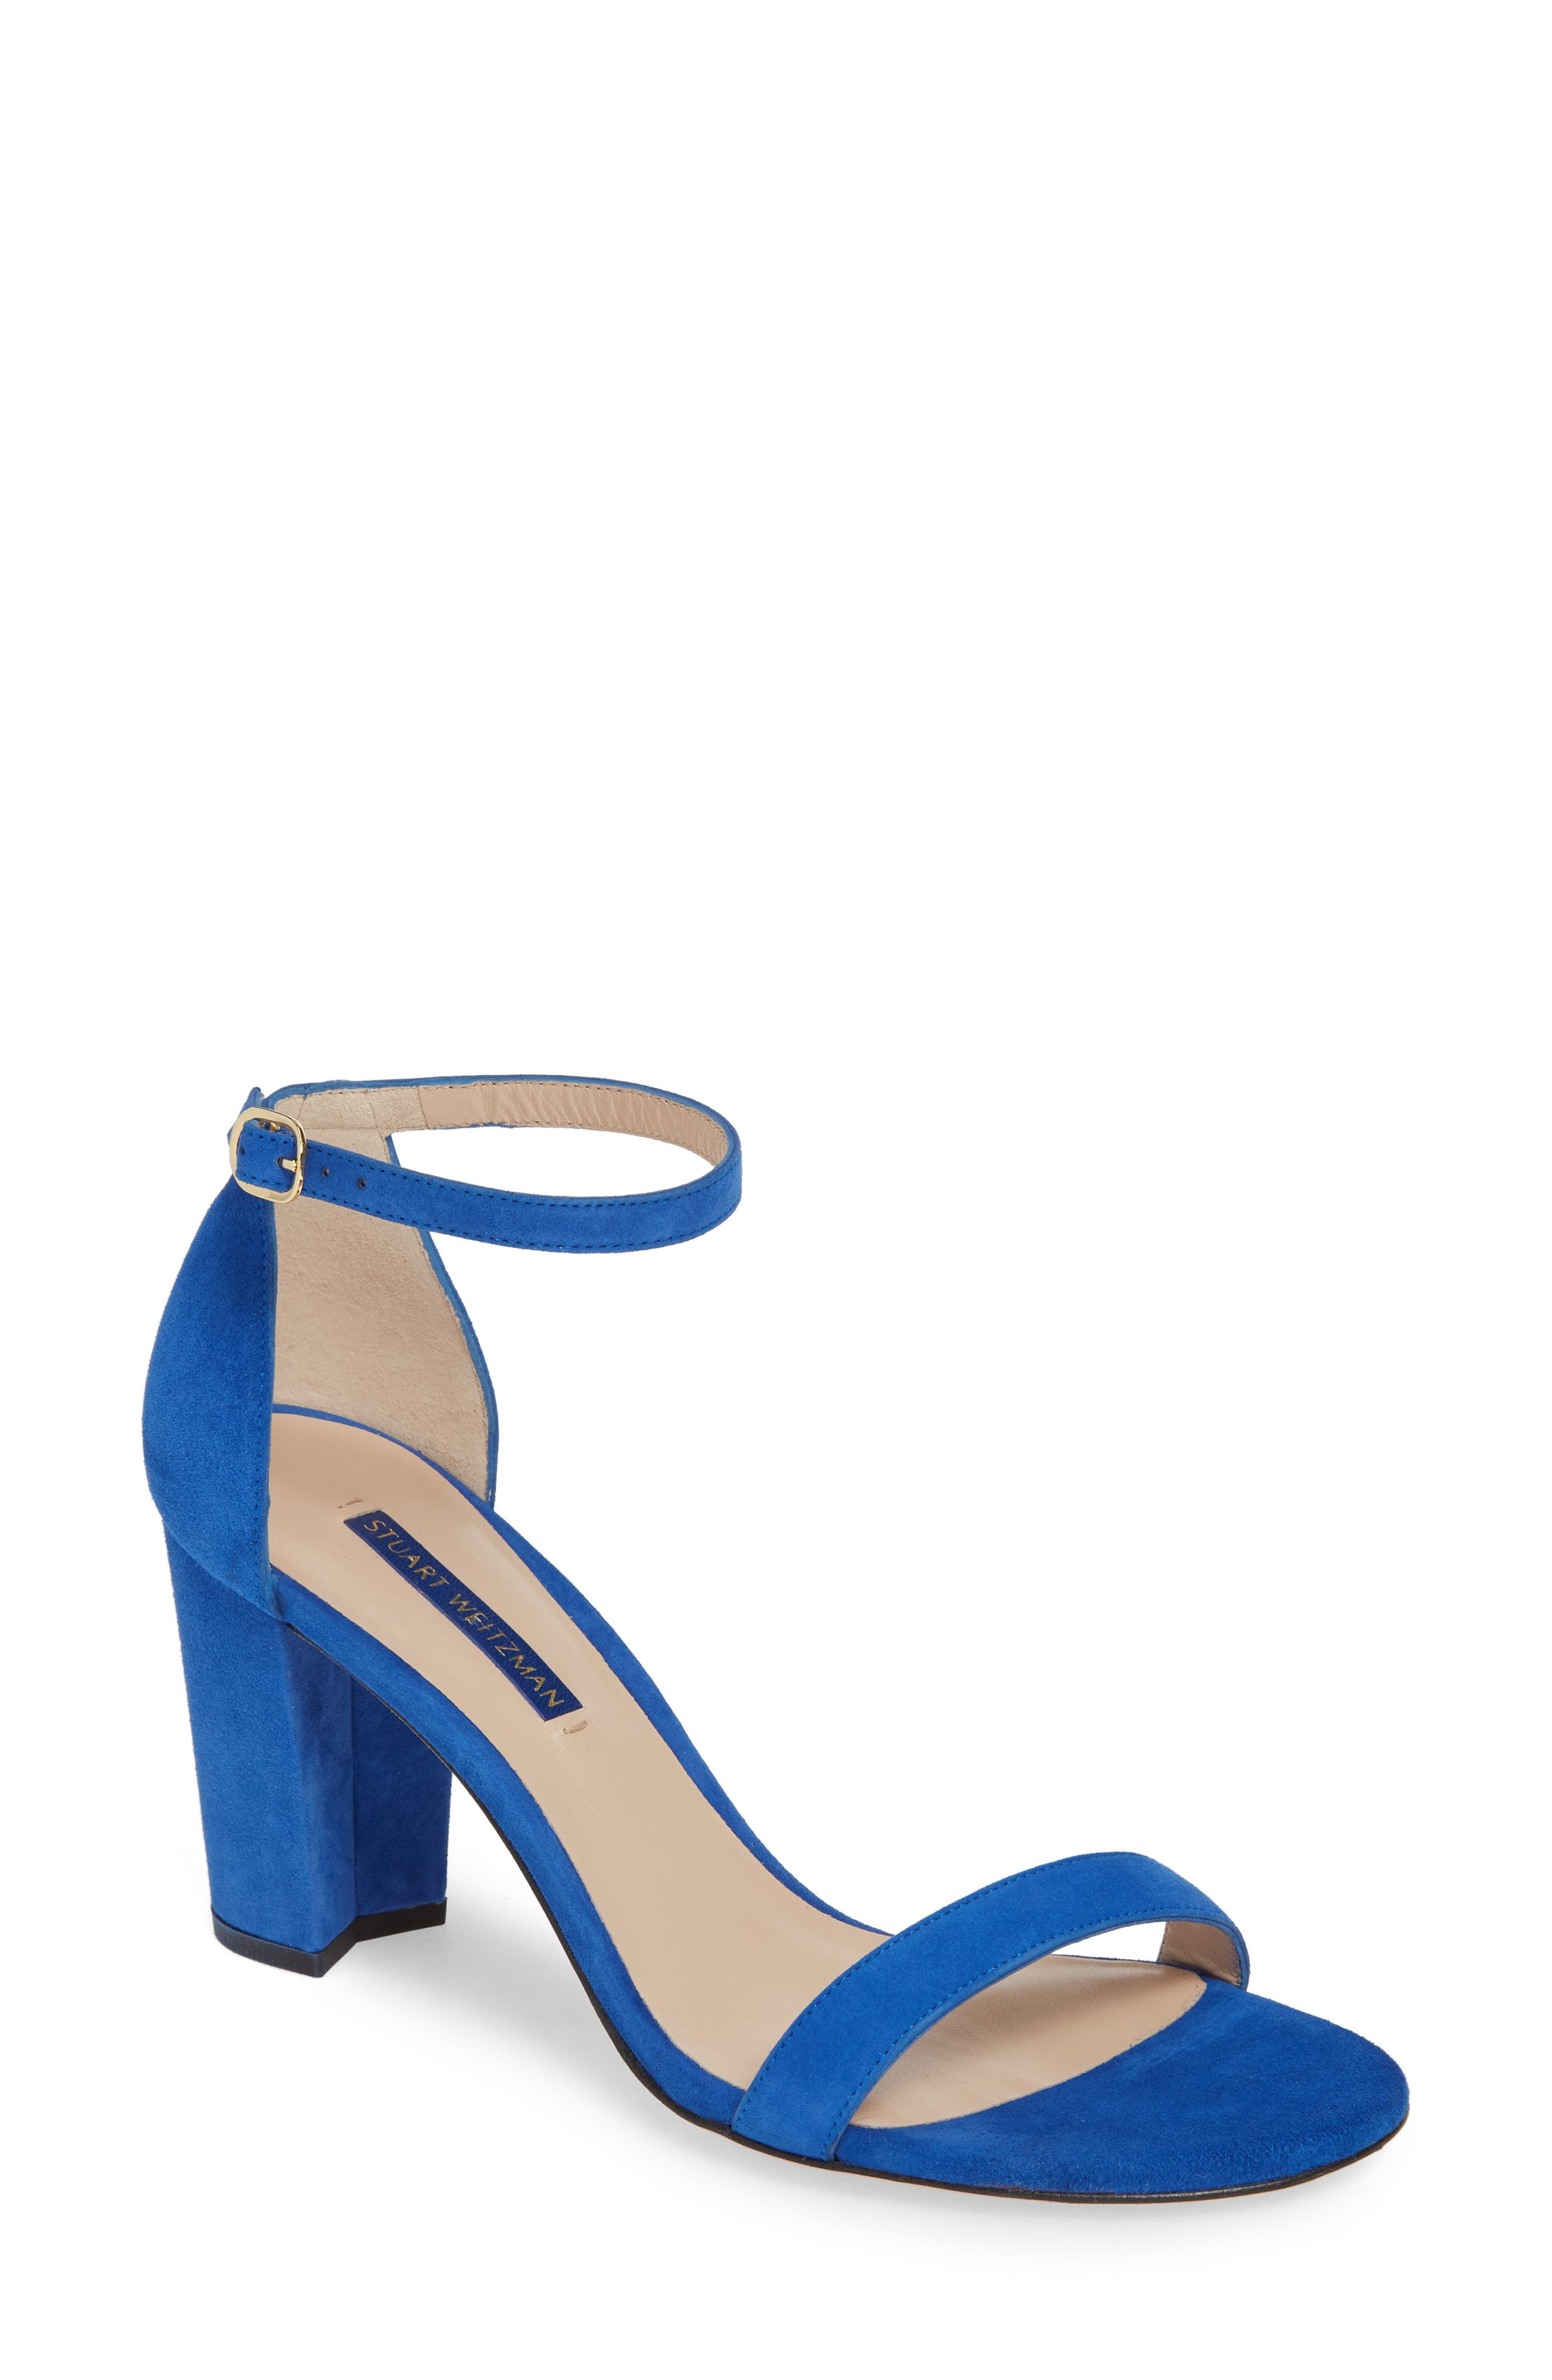 Stuart Weitzman Nearlynude Ankle Strap Sandal, Blue